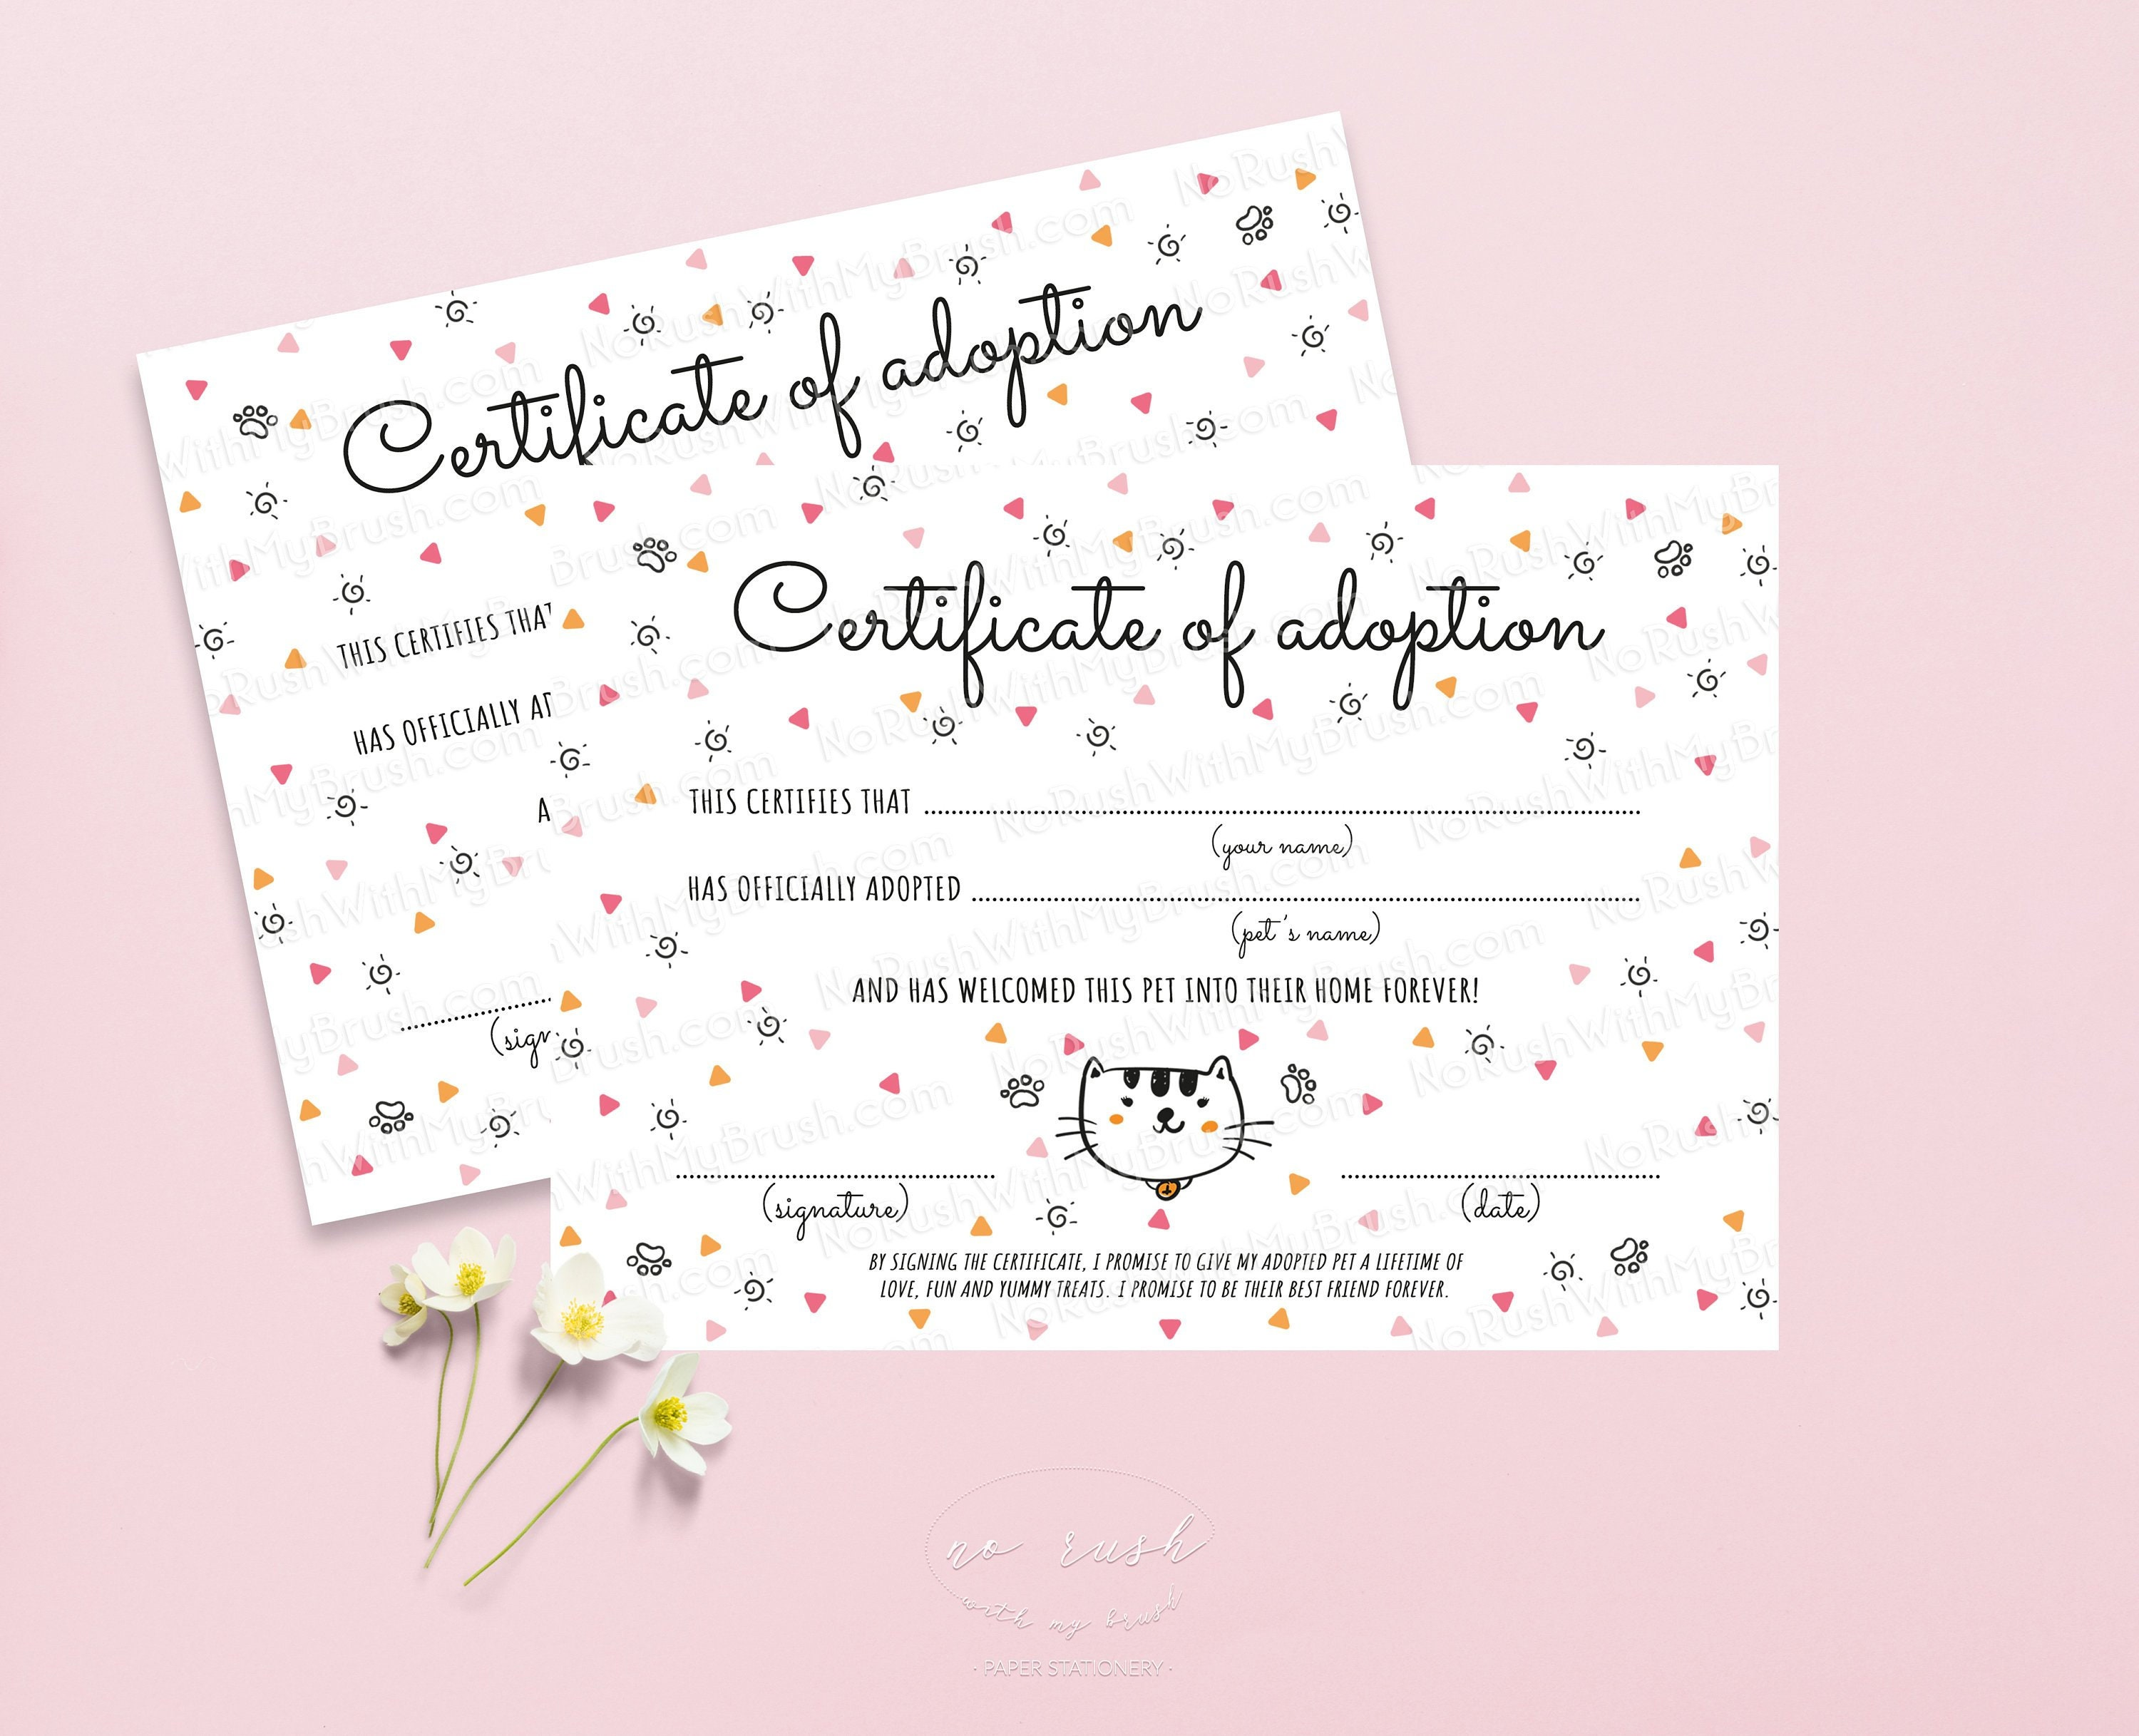 picture about Printable Adoption Certificate referred to as Kitty Adoption Certification Printable Undertake a Cat Certification of Adoption Cat Birthday Bash Prompt Obtain Undertake a Doggy Birthday Pawty